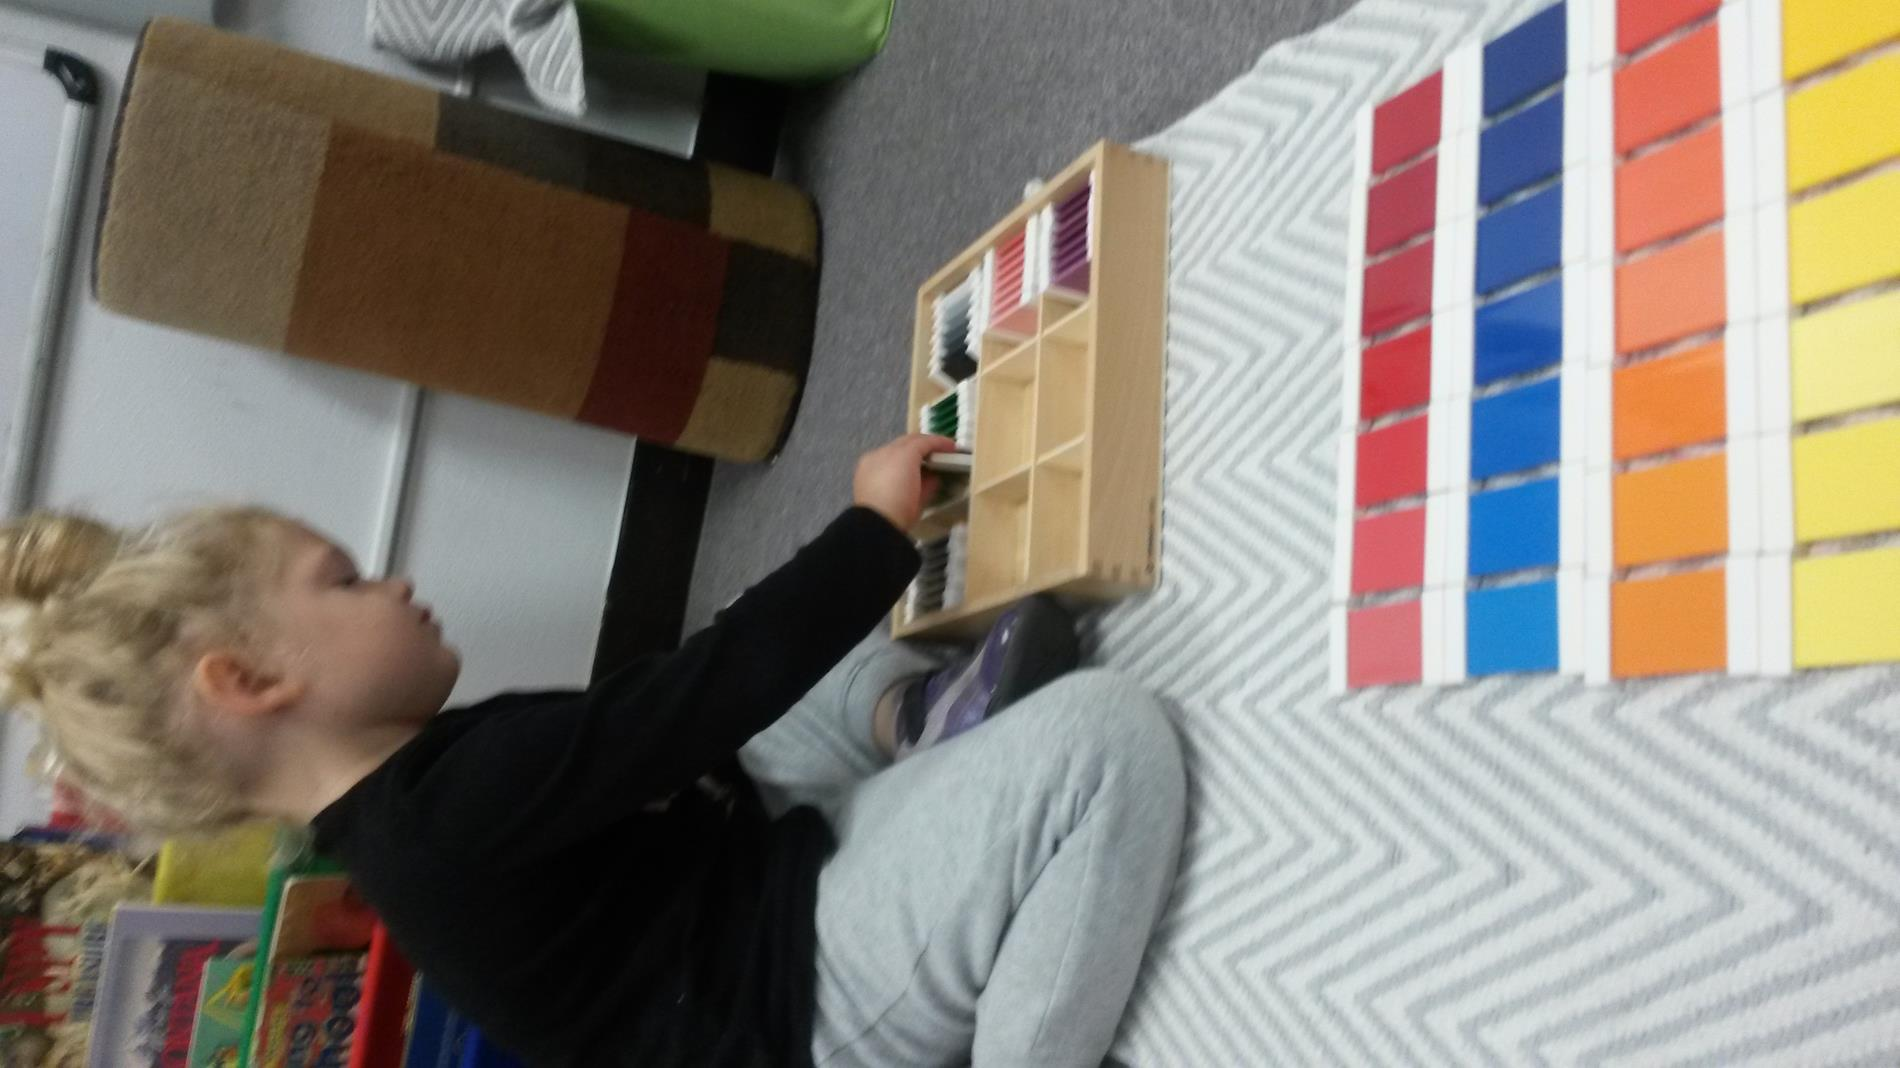 Child working with color cards